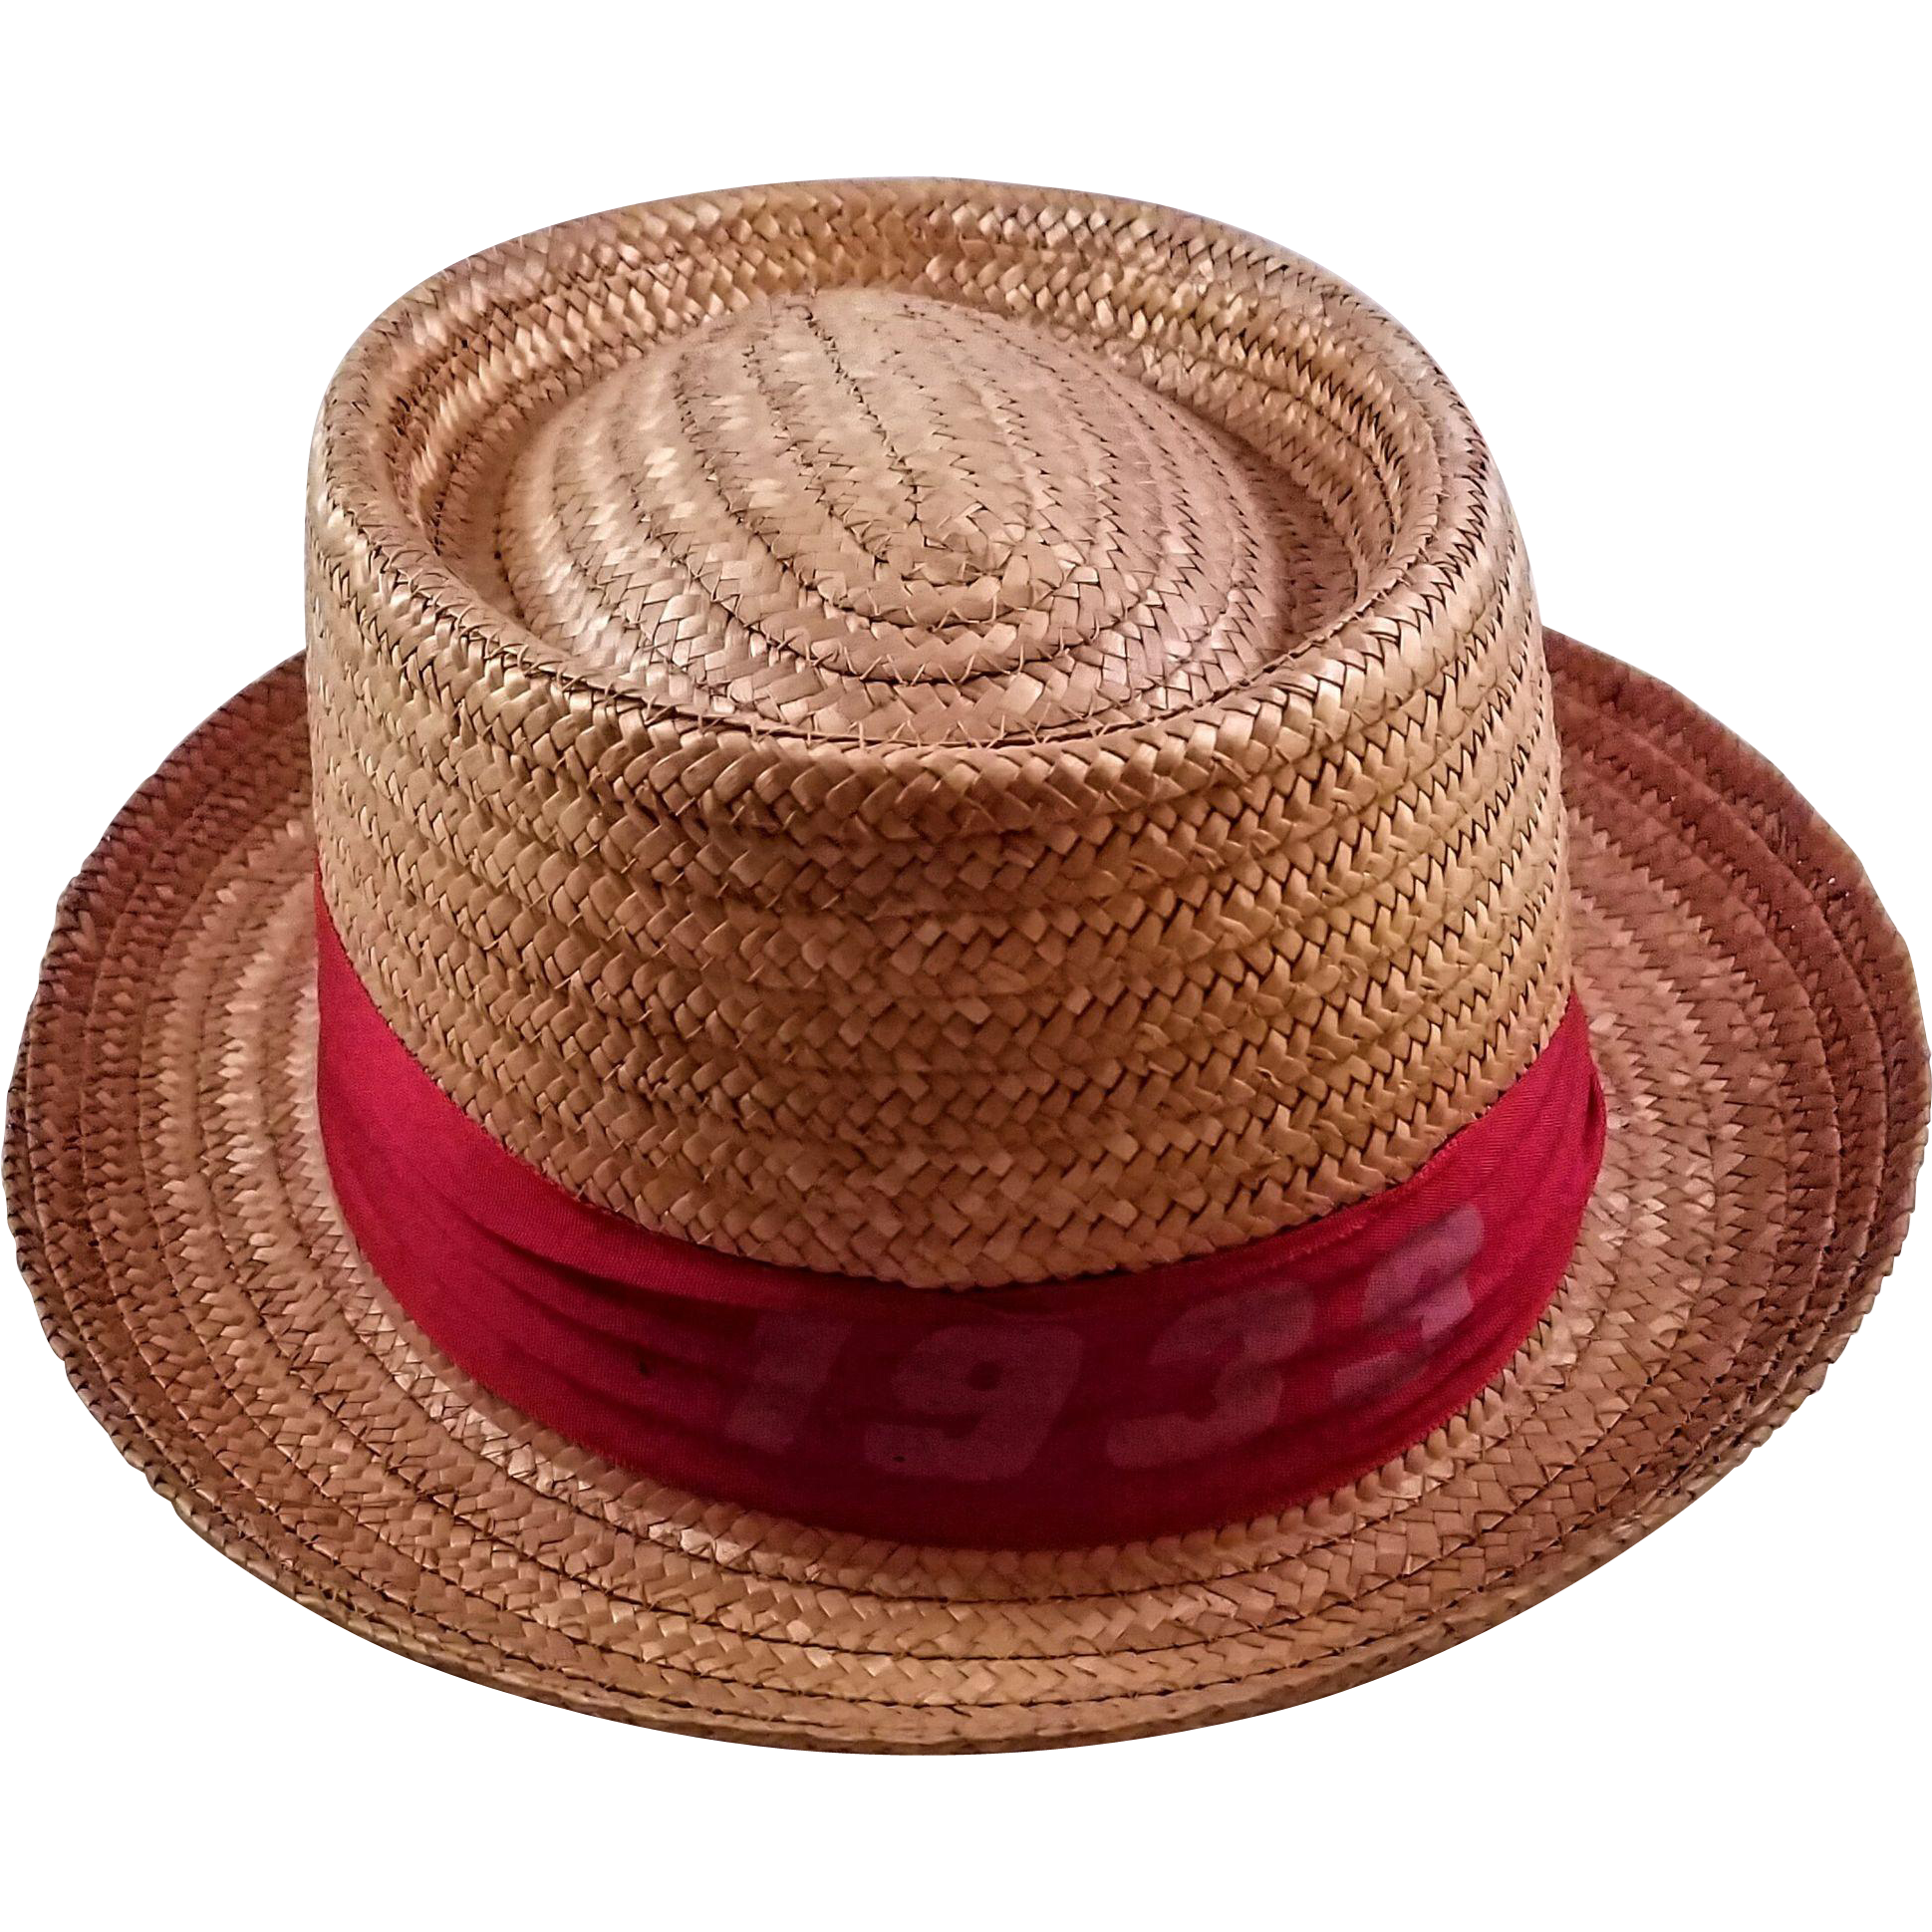 Vintage Men s 1939 Harvard Straw Hat - Made in Italy on RubyLane.com 5b1f4bec747